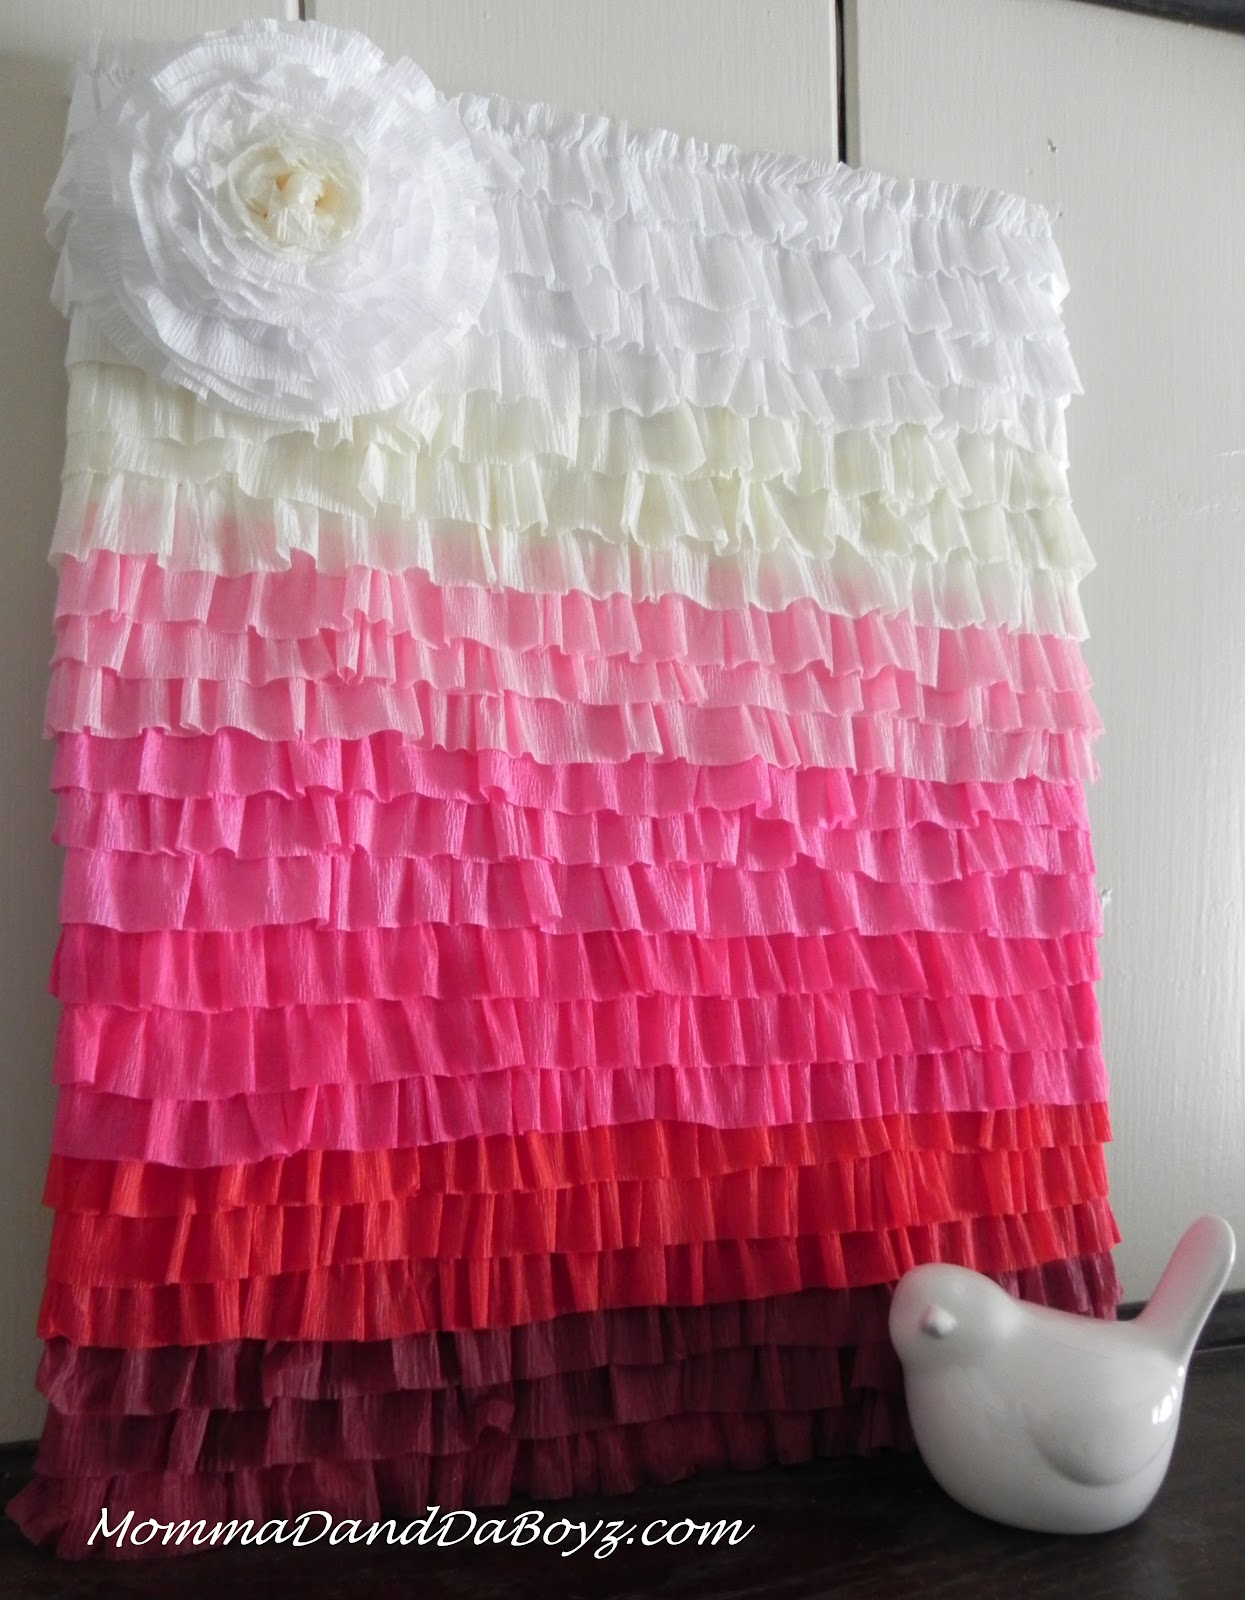 Diy Backdrop Stand For Dessert Table Crepe Paper Ruffled Ombre Art Momma D And Da Boyz